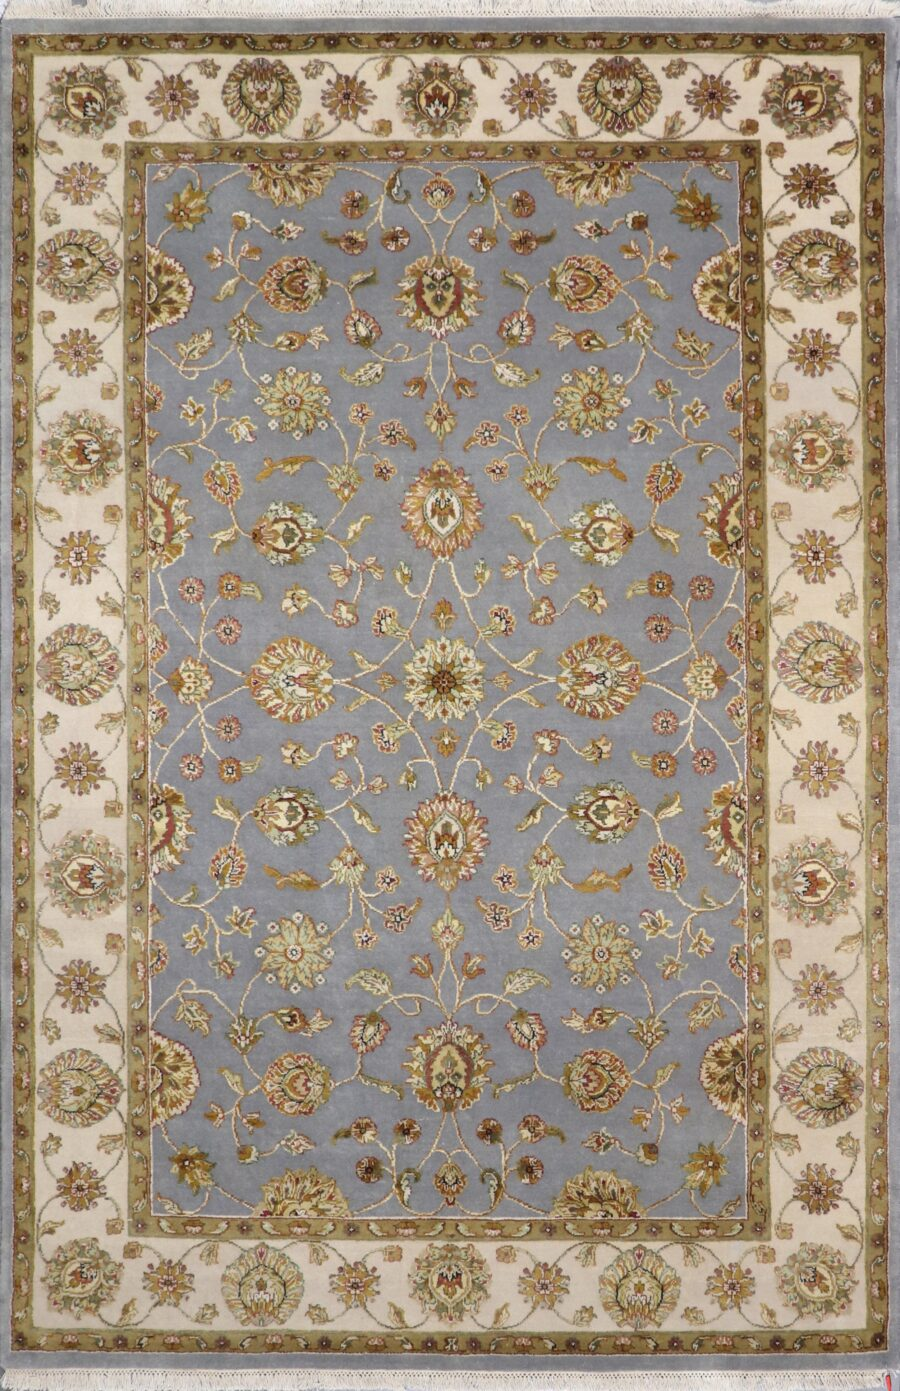 """5'11""""x9' Traditional Gray Tabriz Wool & Silk Hand-Knotted Rug - Direct Rug Import   Rugs in Chicago, Indiana,South Bend,Granger"""